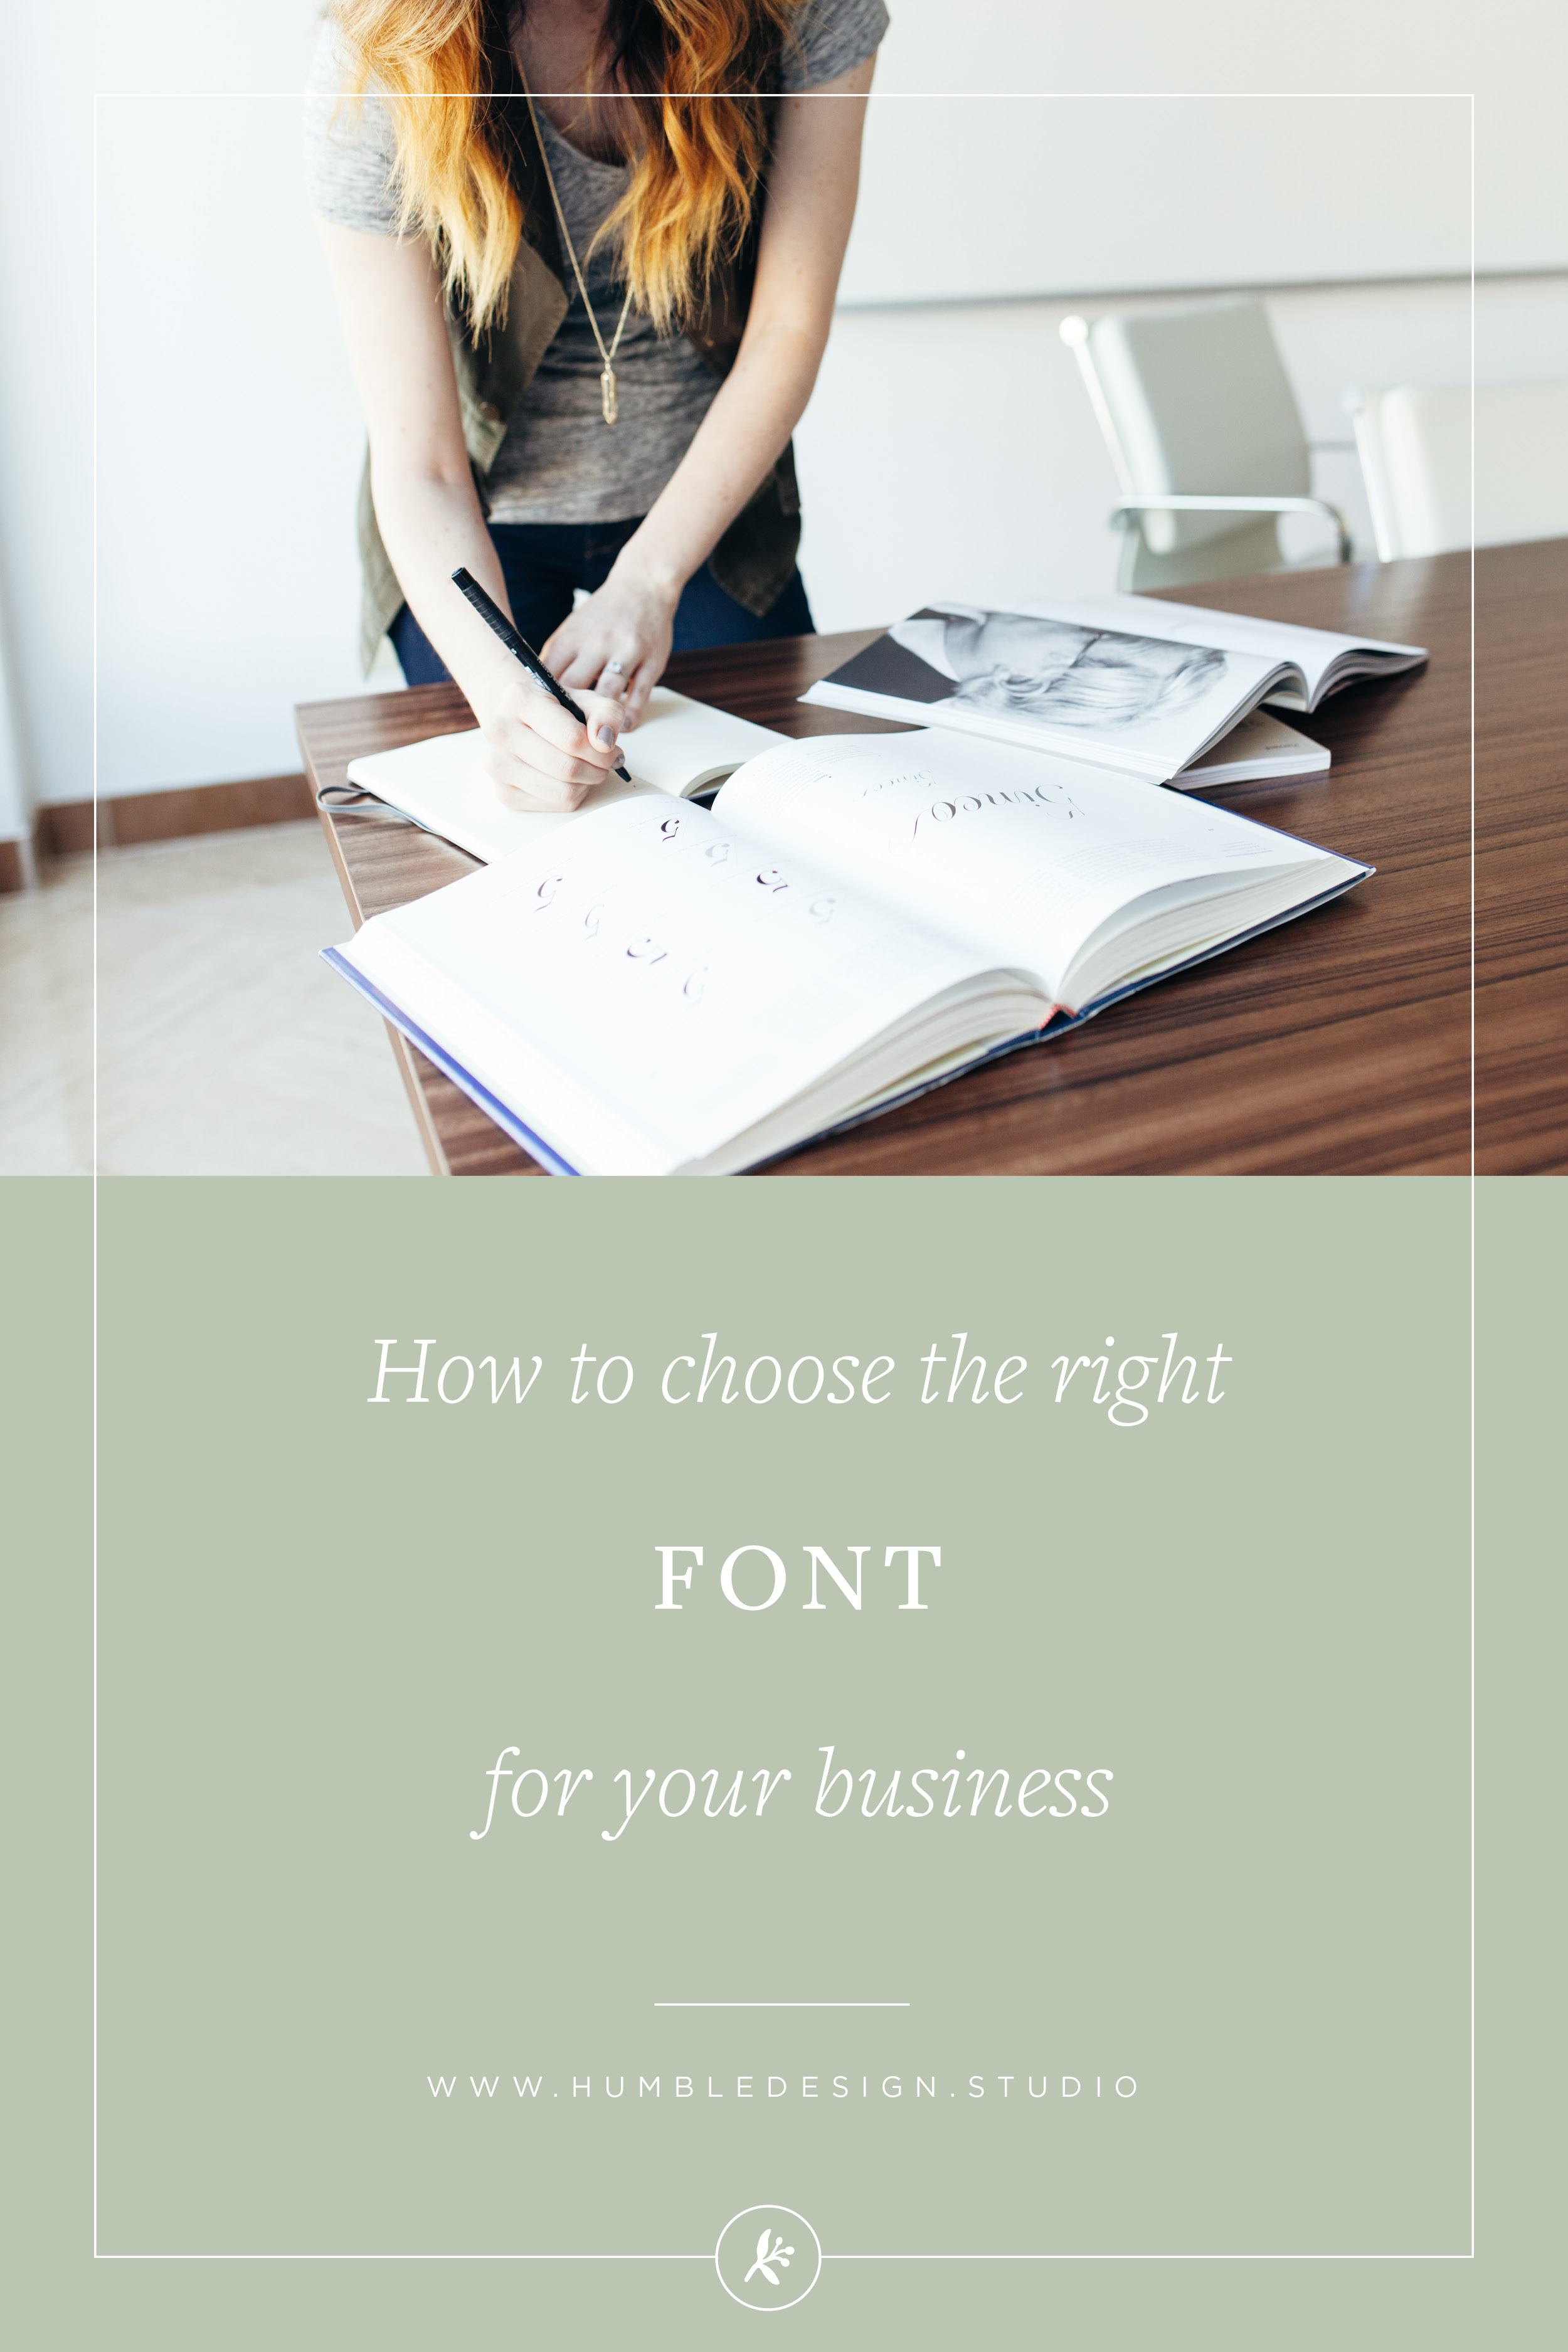 How to choose the right font for your business